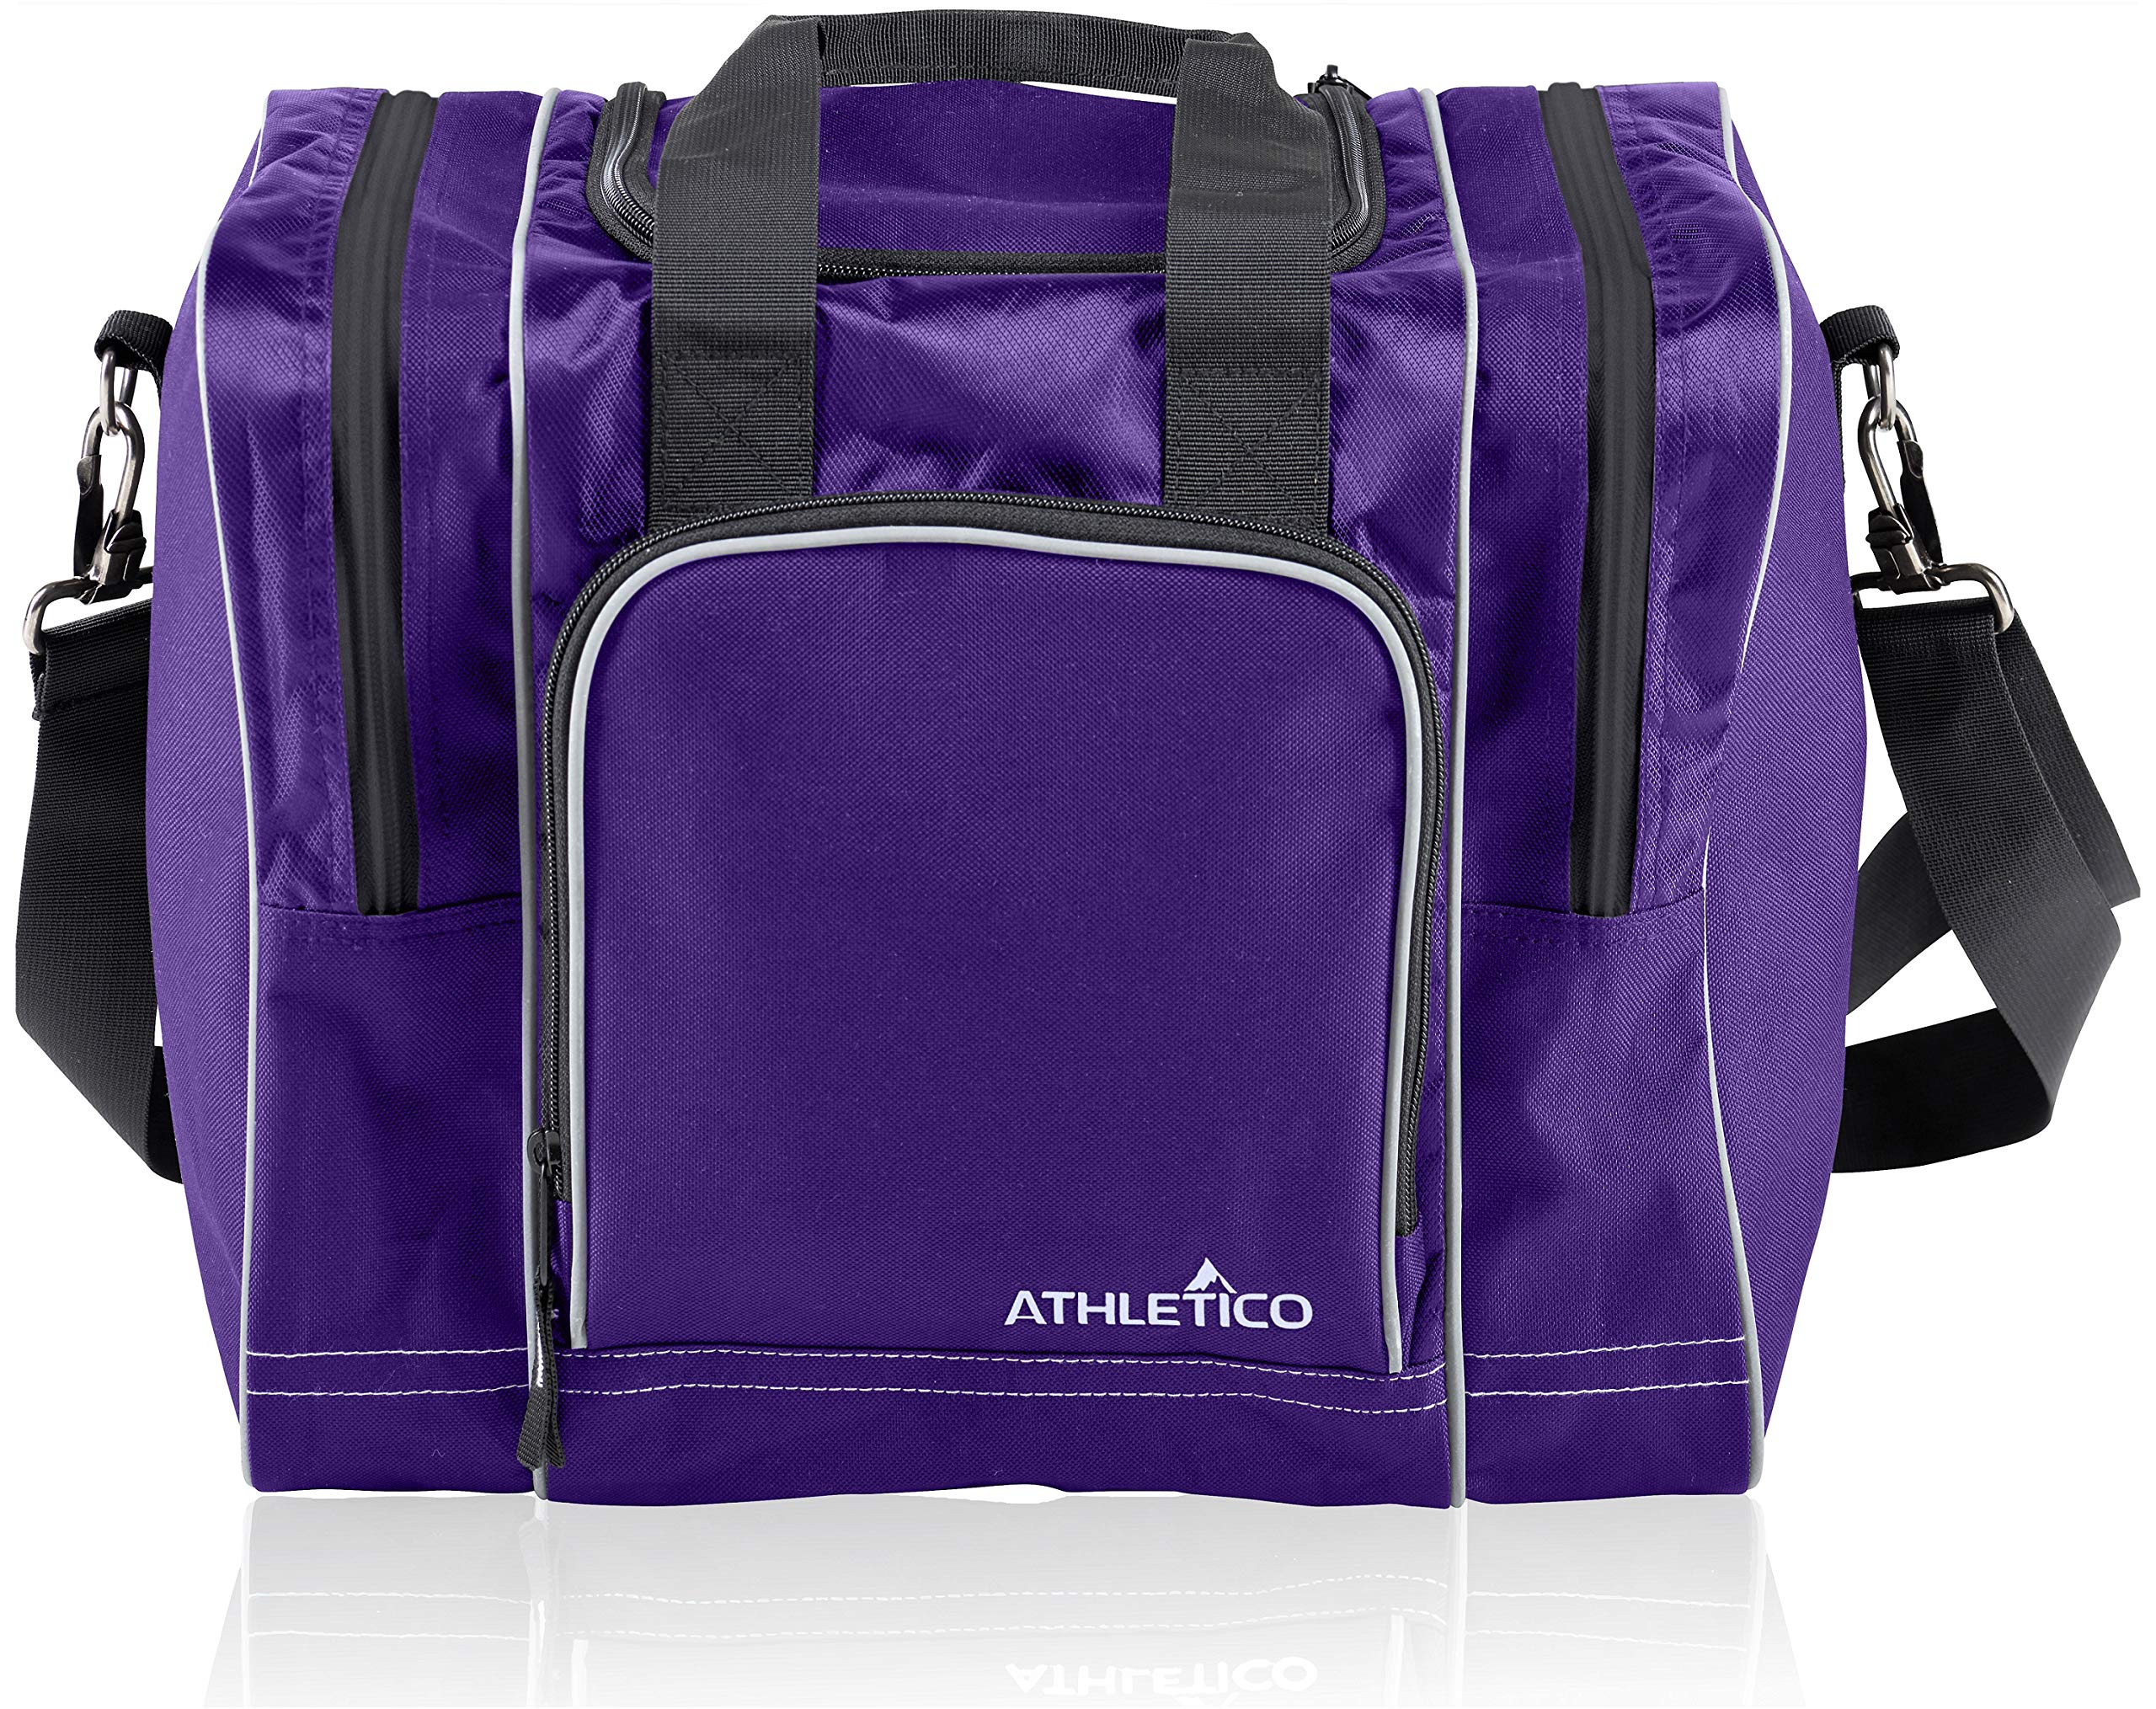 Athletico Bowling Bag for Single Ball - Single Ball Tote Bag with Padded Ball Holder - Fits a Single Pair of Bowling Shoes Up to Mens Size 14 (Purple) by Athletico